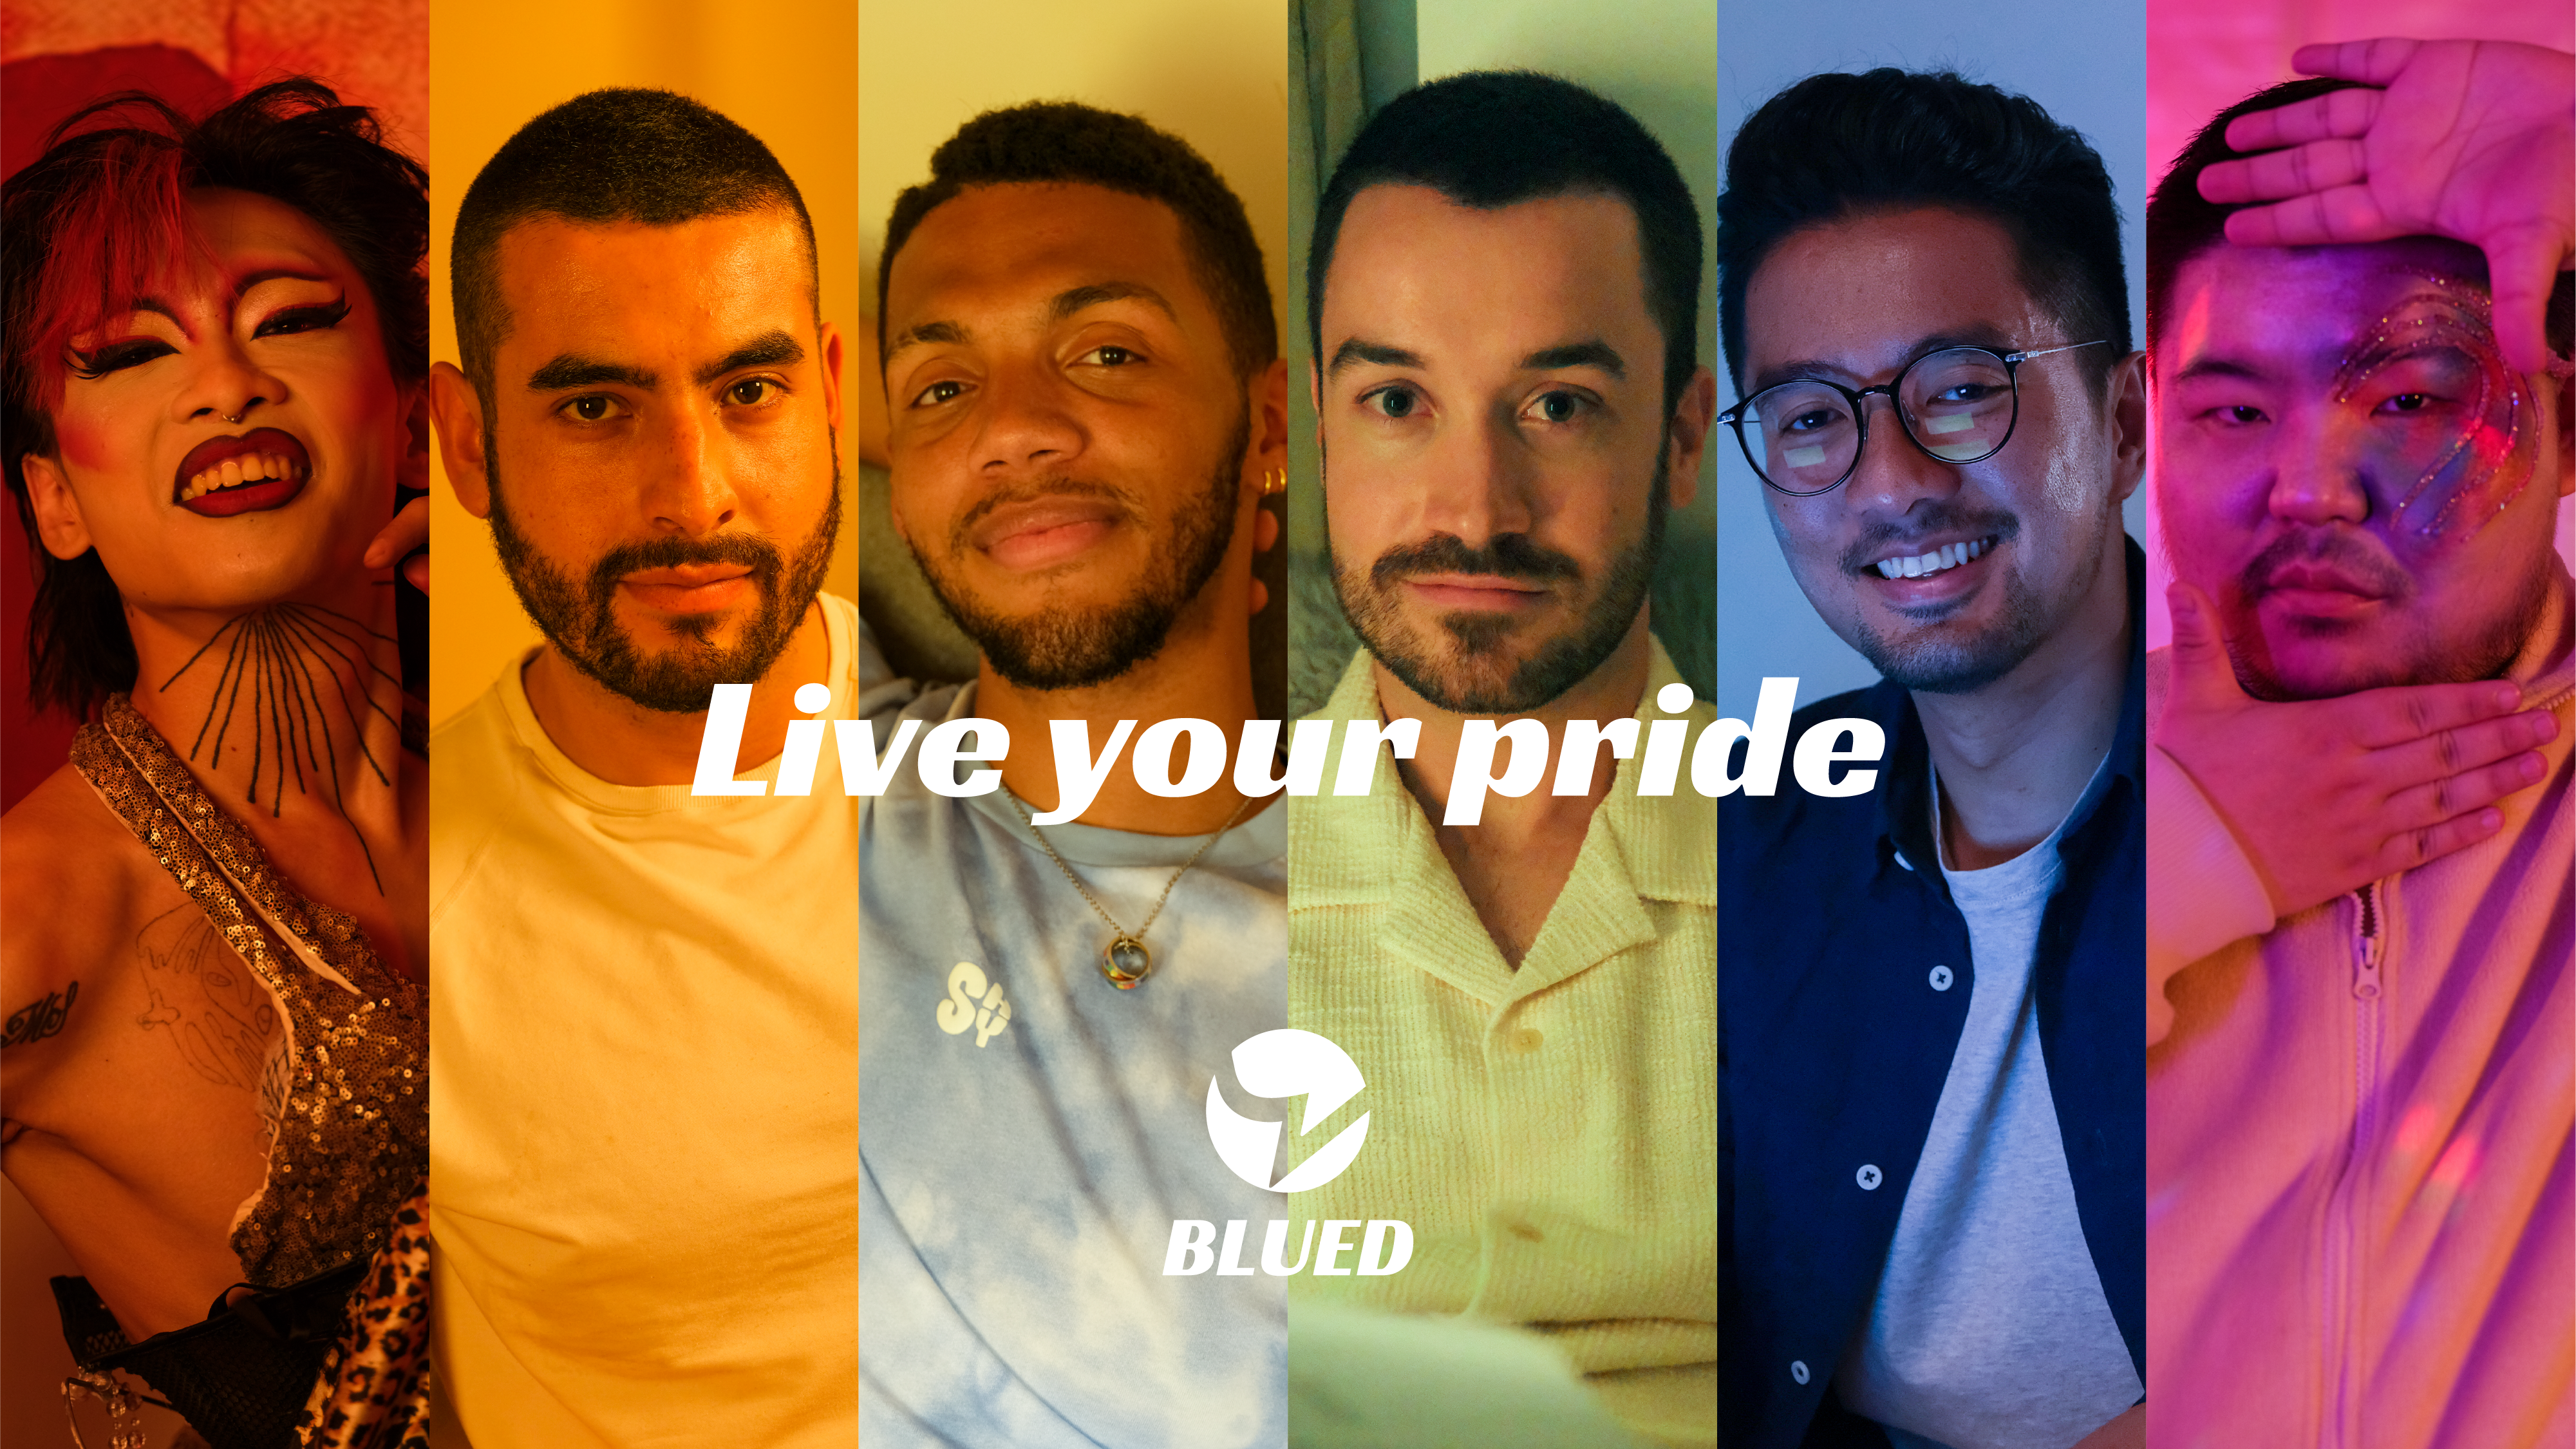 Blued Launches #LiveYourPride Campaign For Global LGBTQ Community